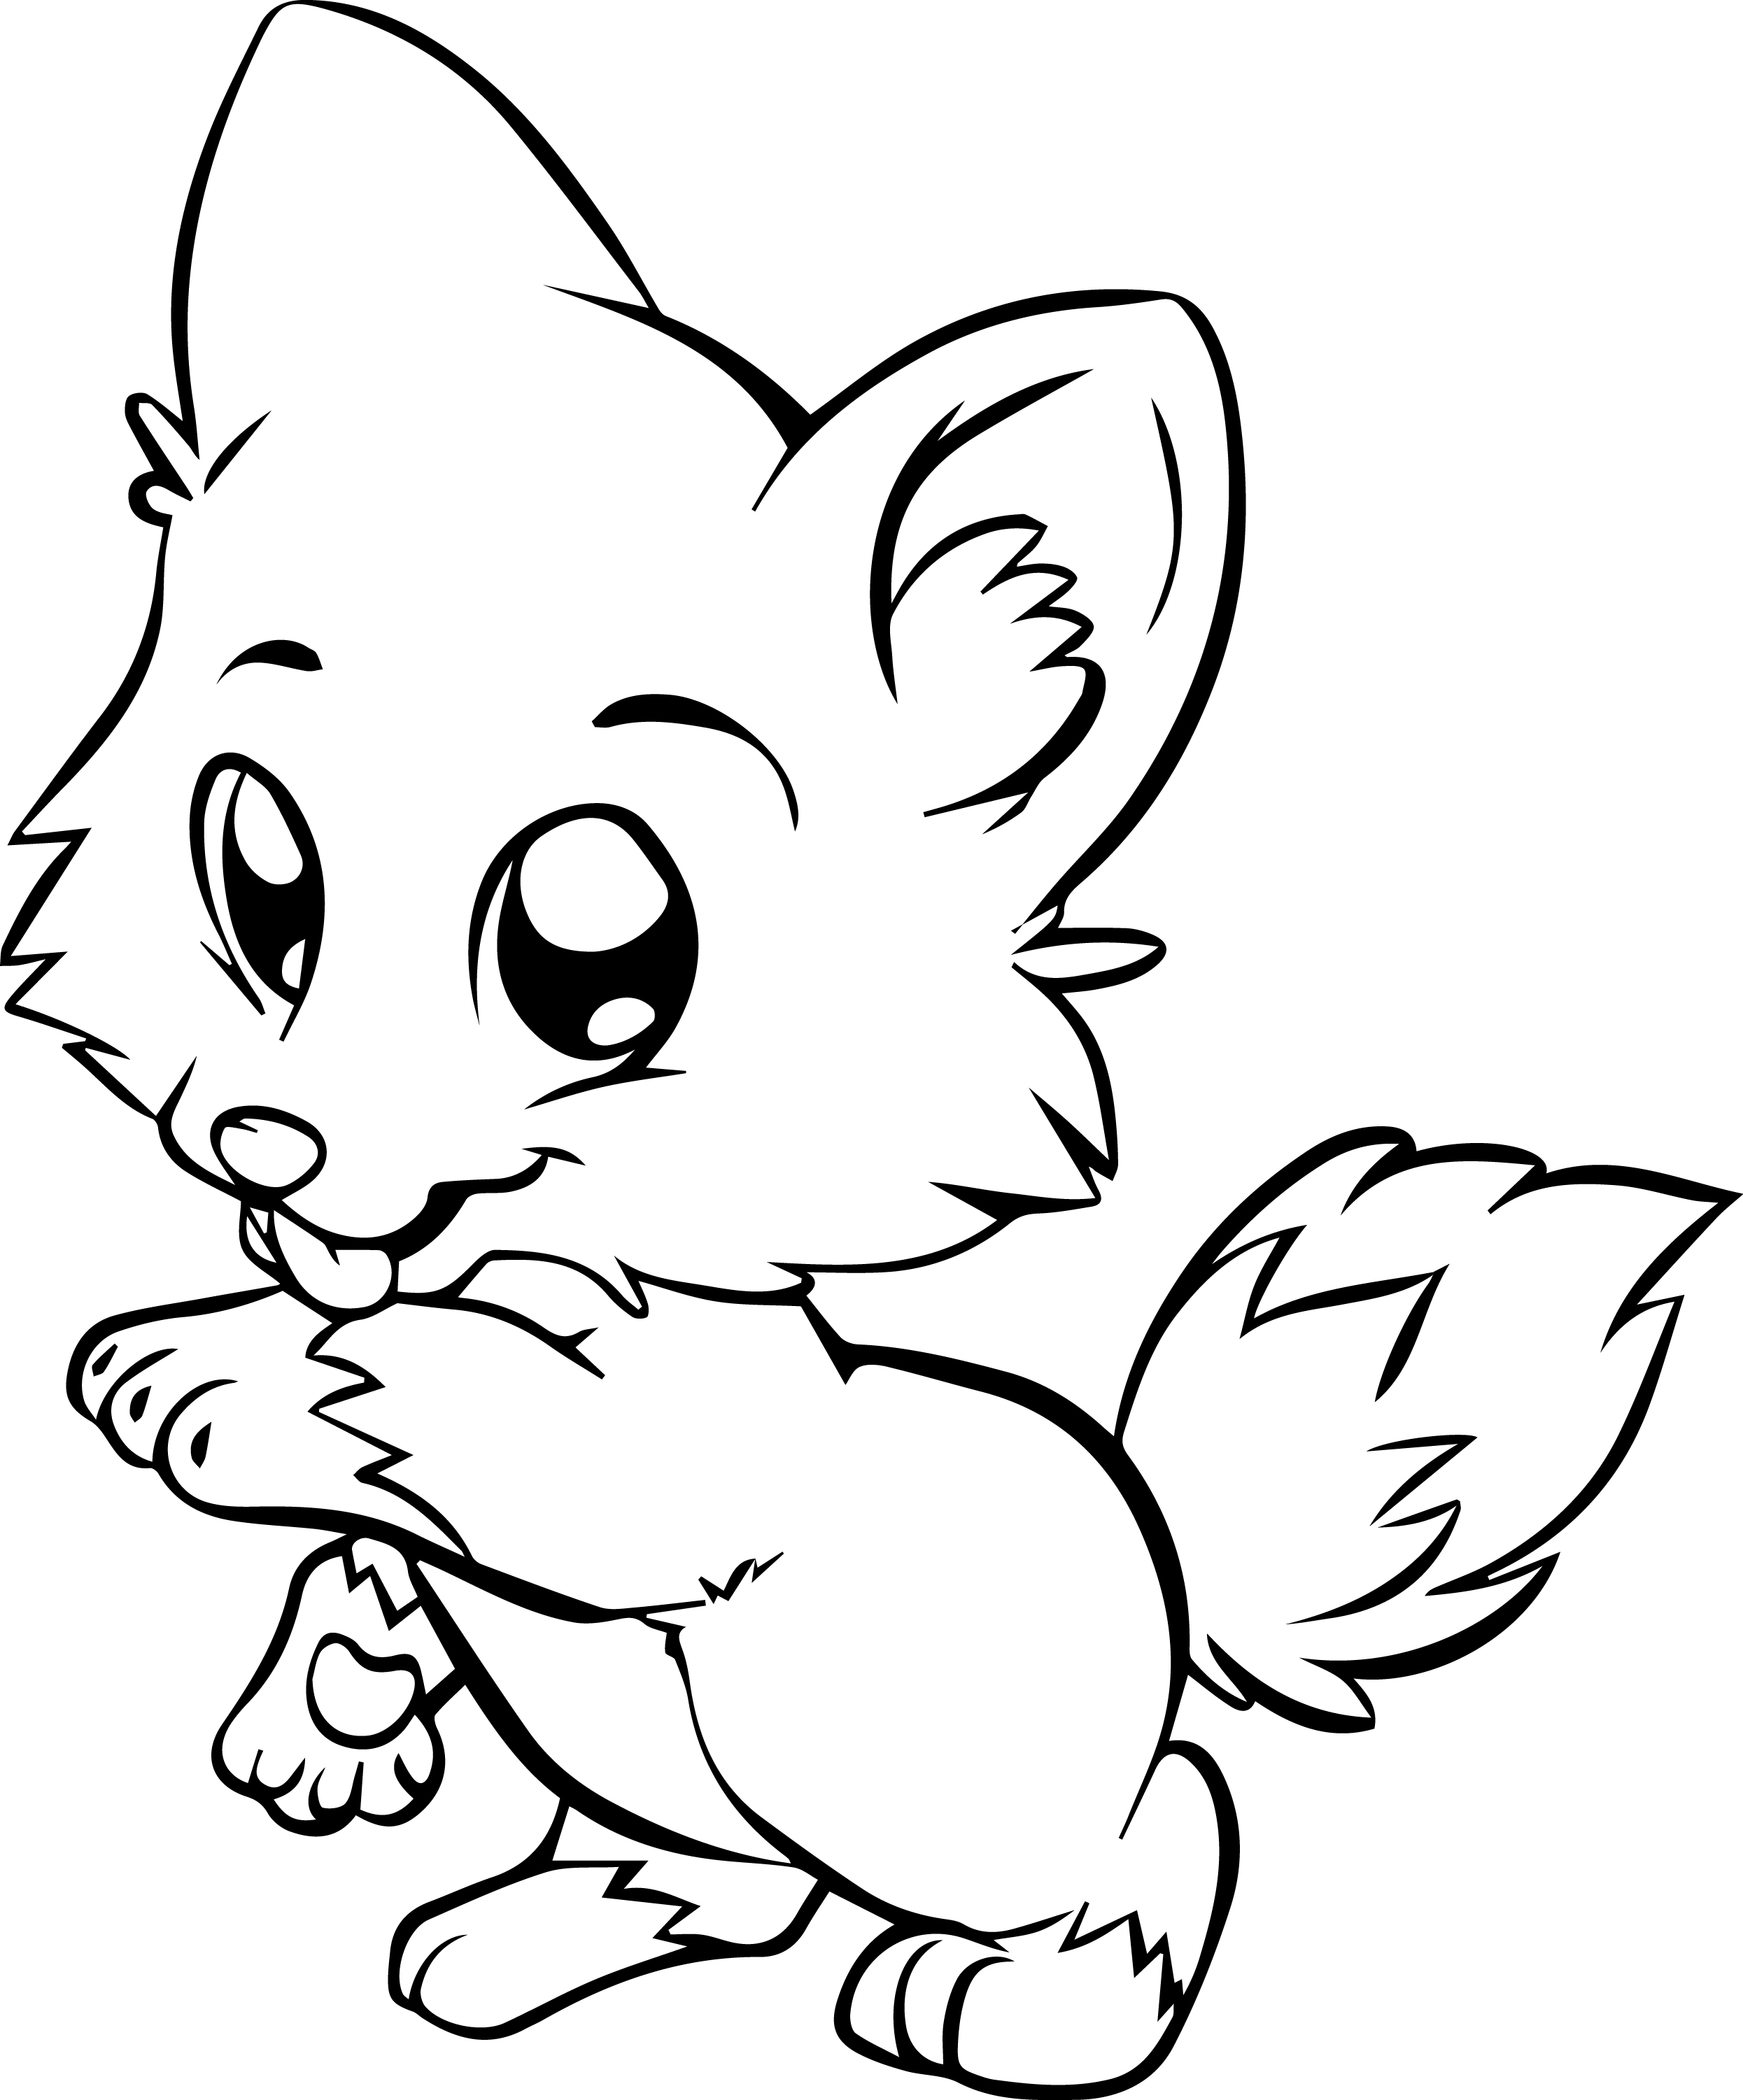 2491x3002 Coloring Pages Surprising Of Dog Beautiful Cute